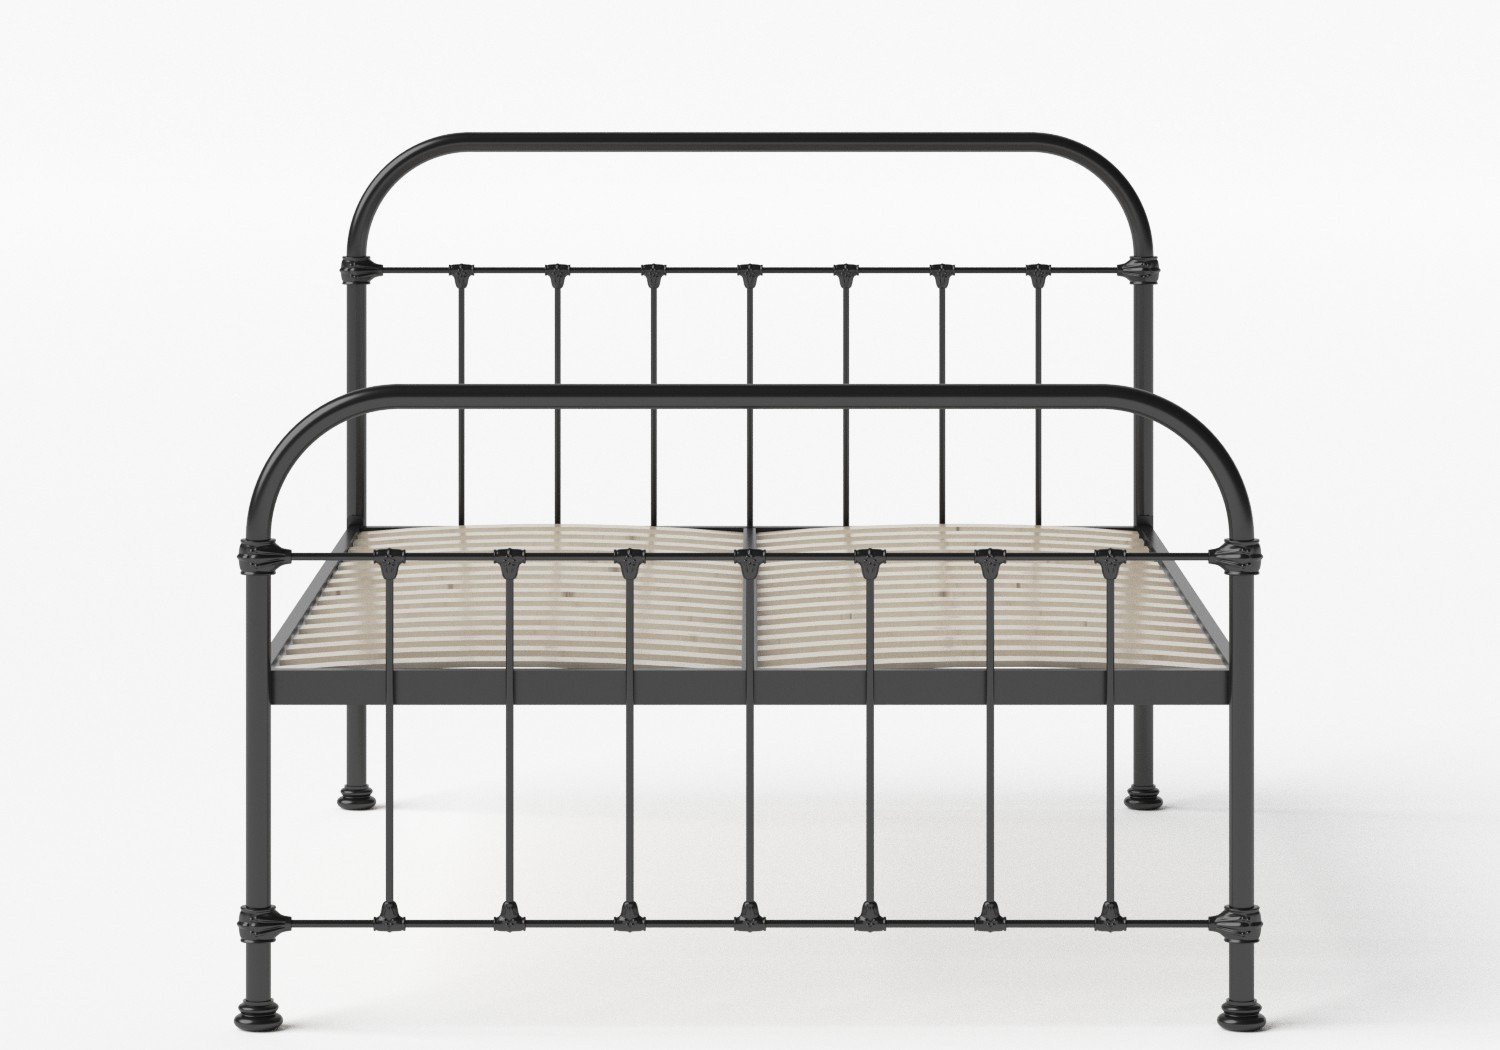 Timolin Iron/Metal Bed in Satin Black shown with slatted frame